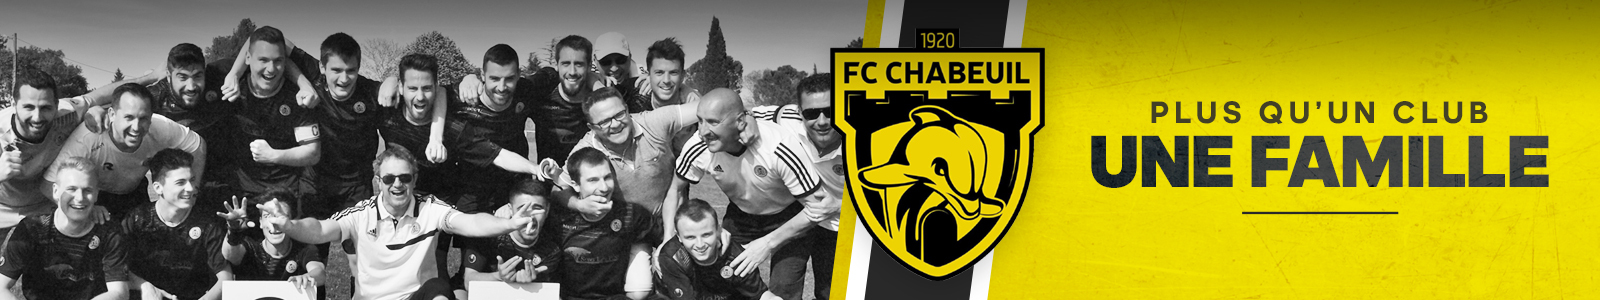 Football Club Chabeuil : site officiel du club de foot de CHABEUIL - footeo